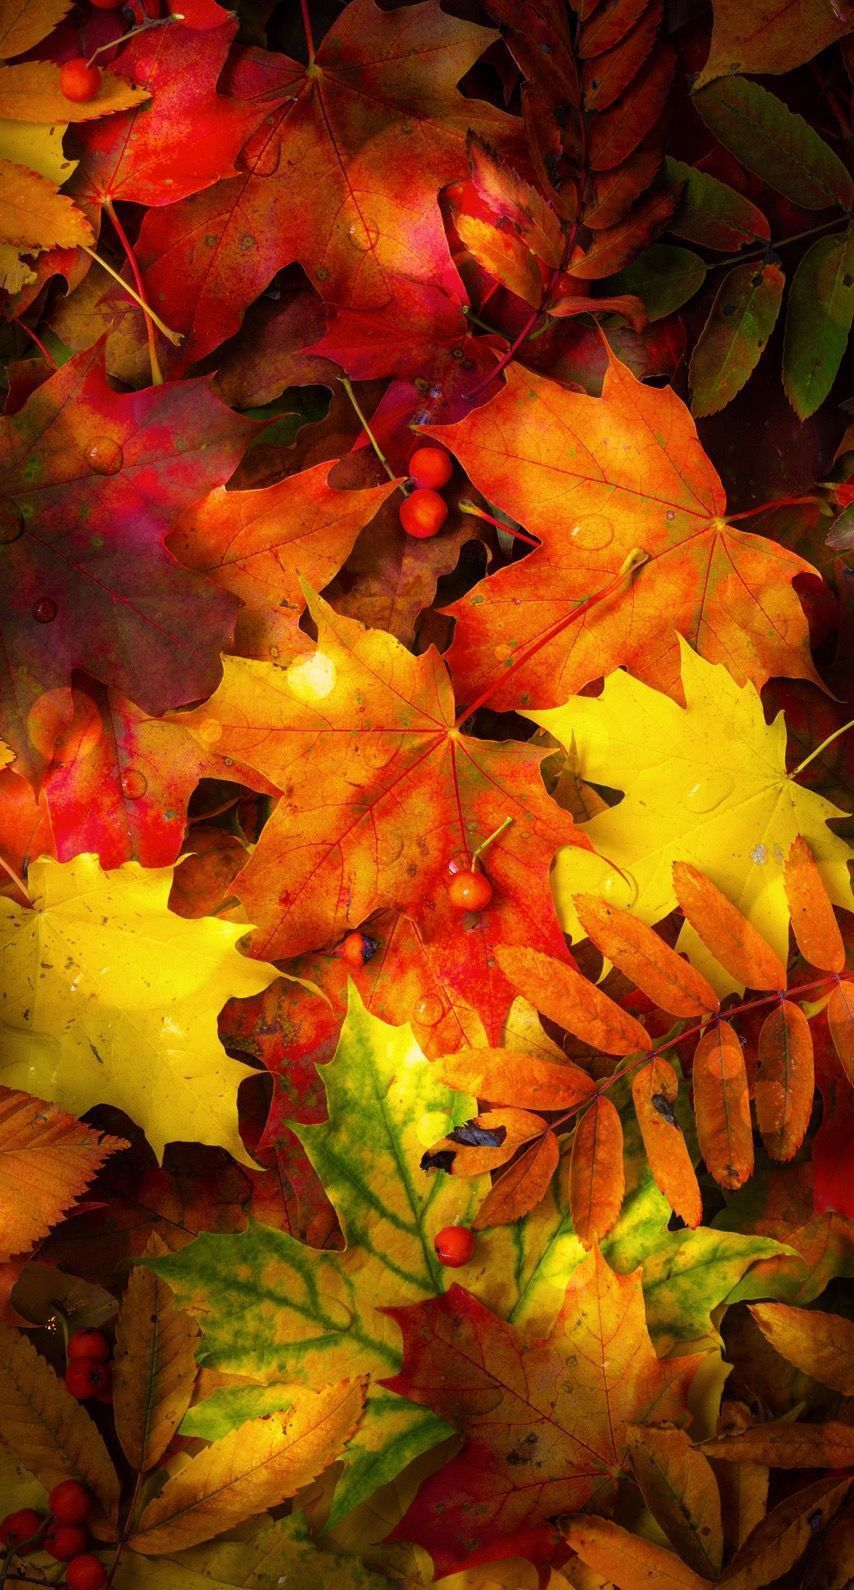 Pin By Lisa Degarmo On Cell Phone Background Wallpaper Lock Screen Autumn Leaves Wallpaper Painting Fall Leaves Autumn Wallpaper